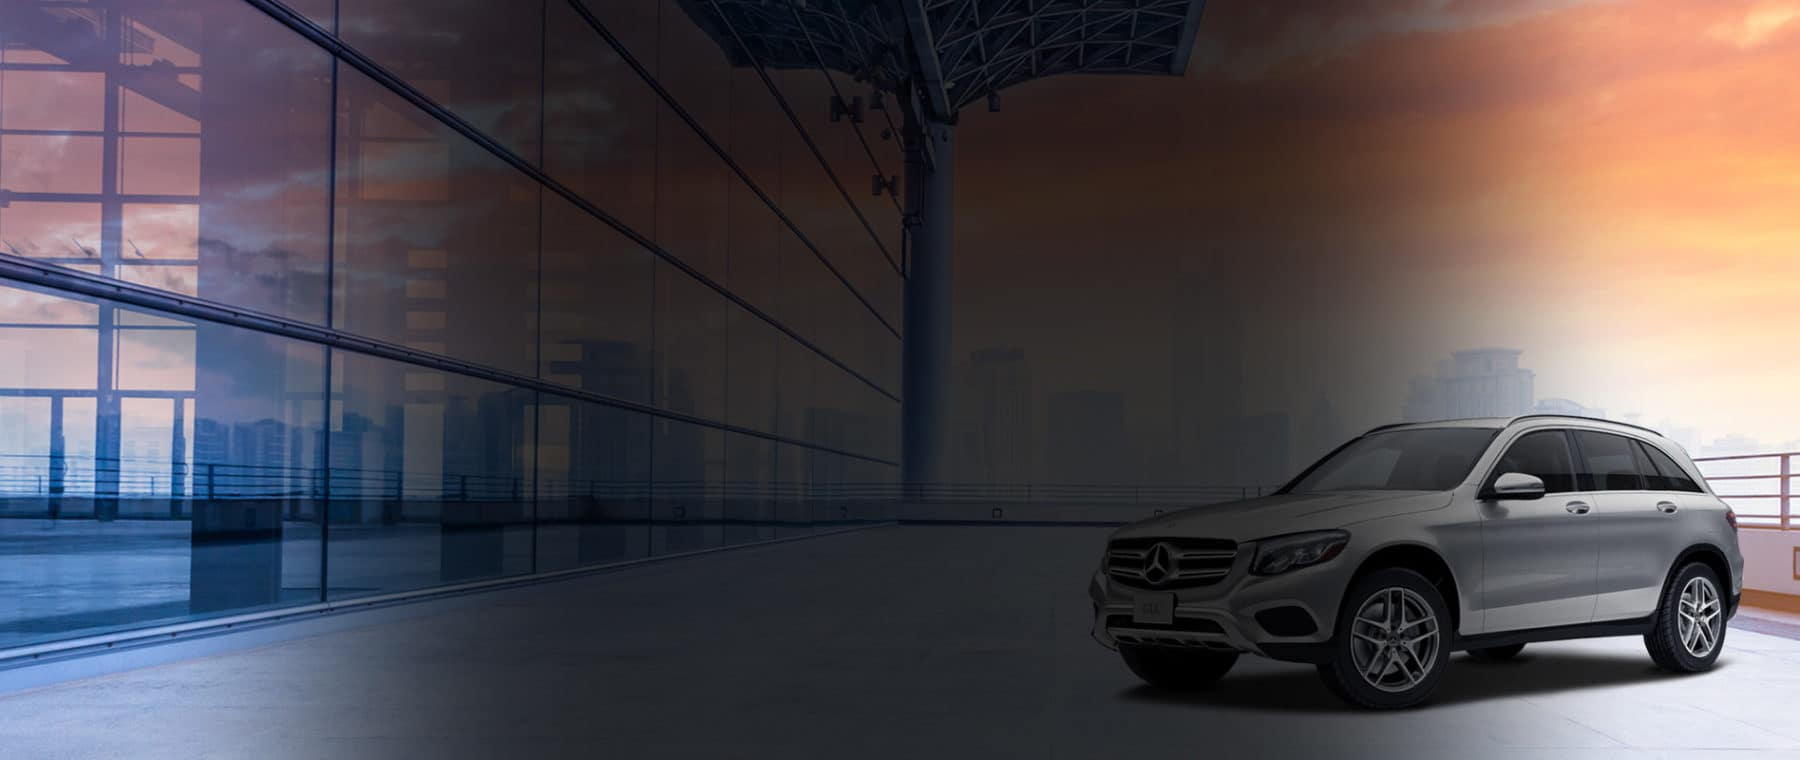 475d17b1c6 Welcome to Mercedes-Benz Toronto Retail Group